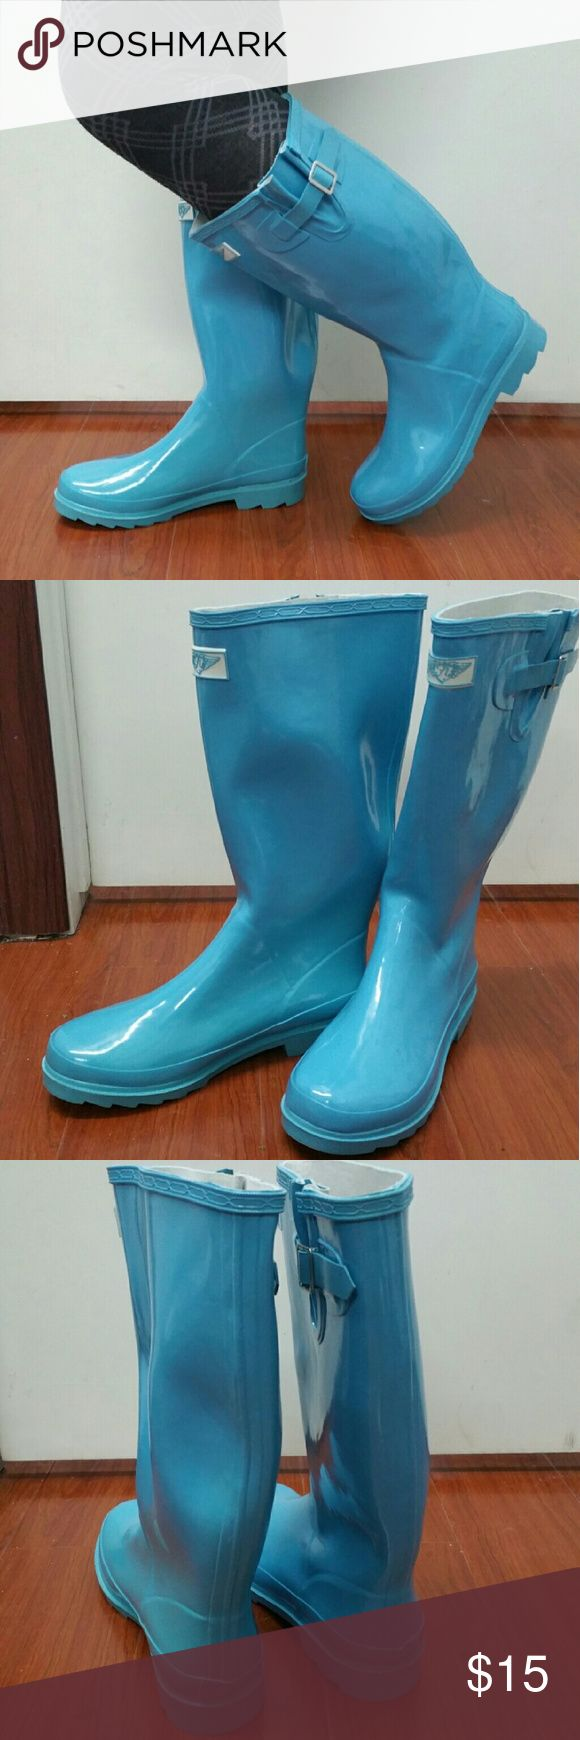 "Woman Knee-high Rain boots, #3106, Turquoise Very lightly used stunning turquoise woman tall rainboots by Forever Young. May have minor cosmetic scuffs. 100% rubber rain boots!!! Approx. 14"" tall, rainboot leg circumference approx. 15"". Rain boot runs half a size larger than your regular shoes.  They are taller than galoshes and protect your feet better while you garden or just walk in the fall or winter rain. Not made for wide calves. A true staple in ladies shoes fashion! Forever Young…"